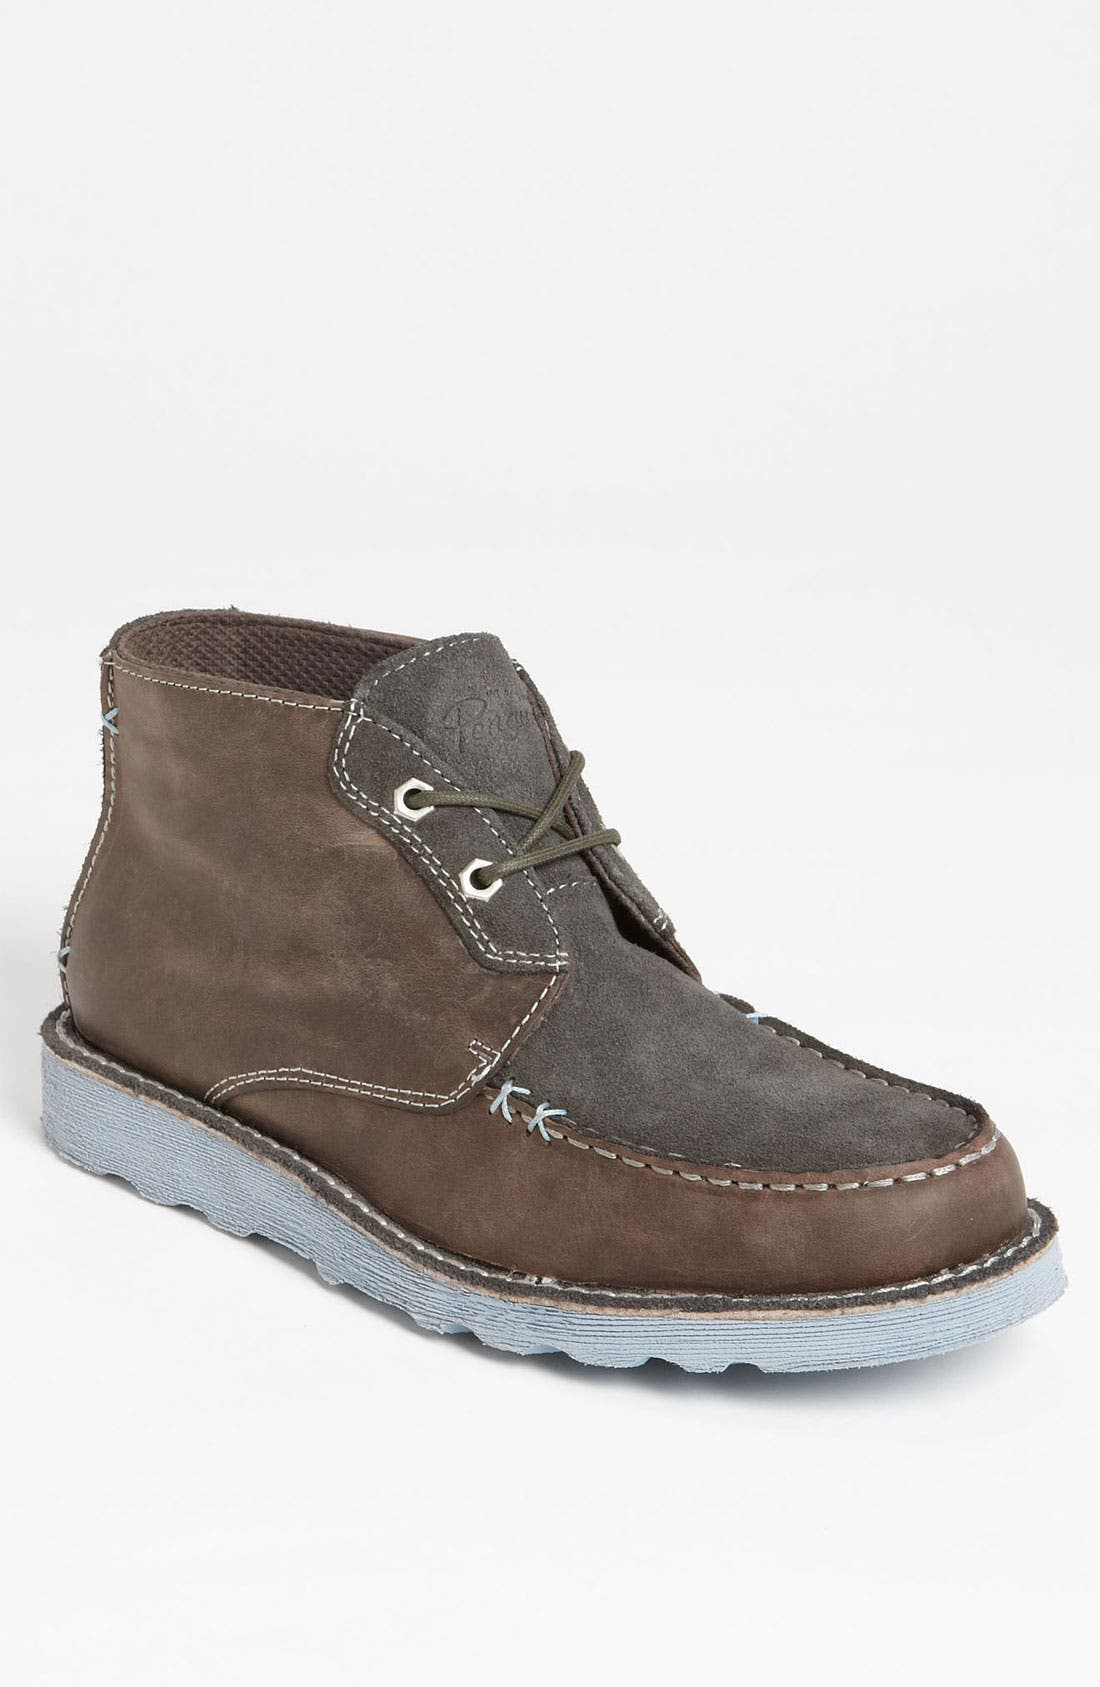 Main Image - Original Penguin 'Moka Kahn' Chukka Boot (Online Only)